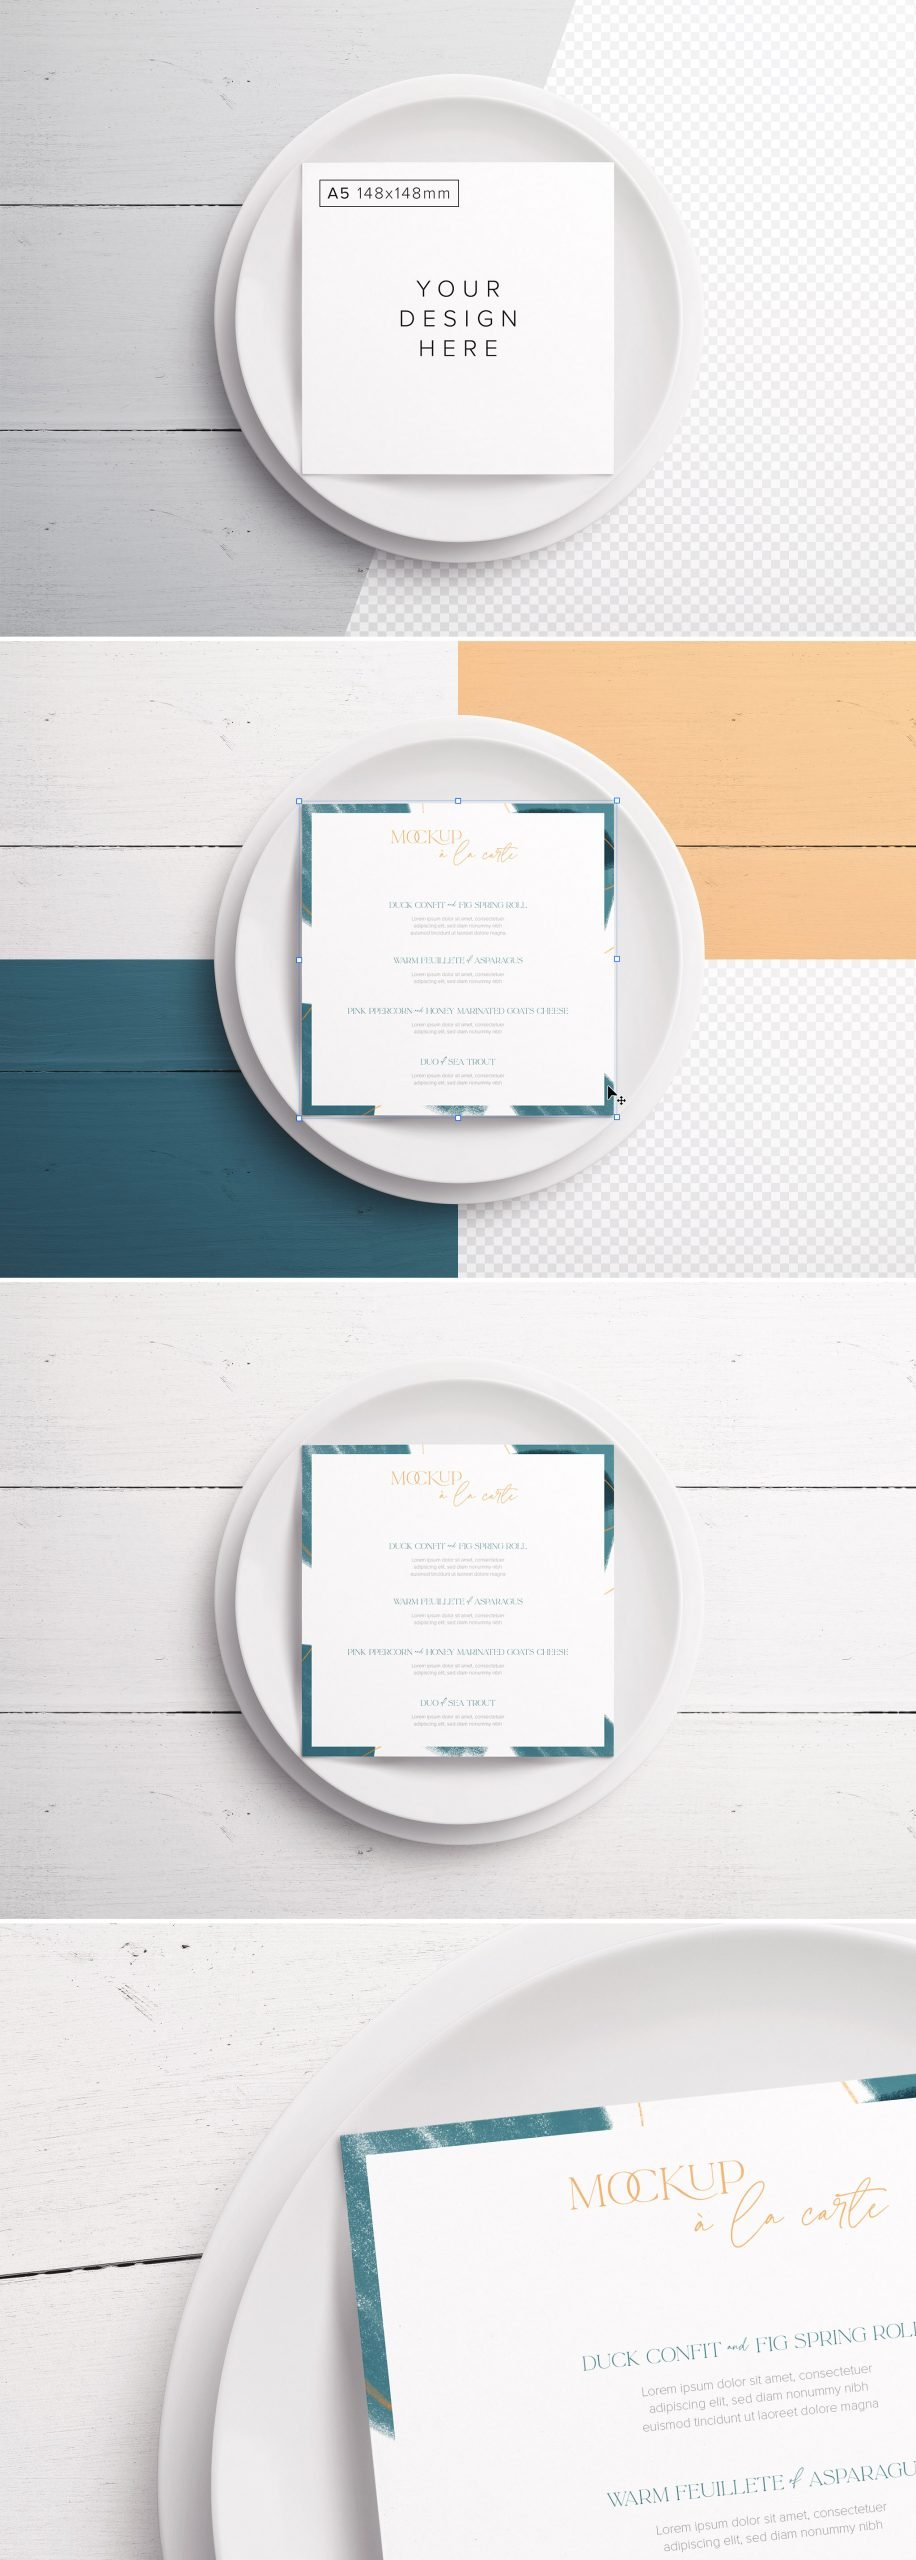 Table A5 Square Menu with Plates Preview scaled